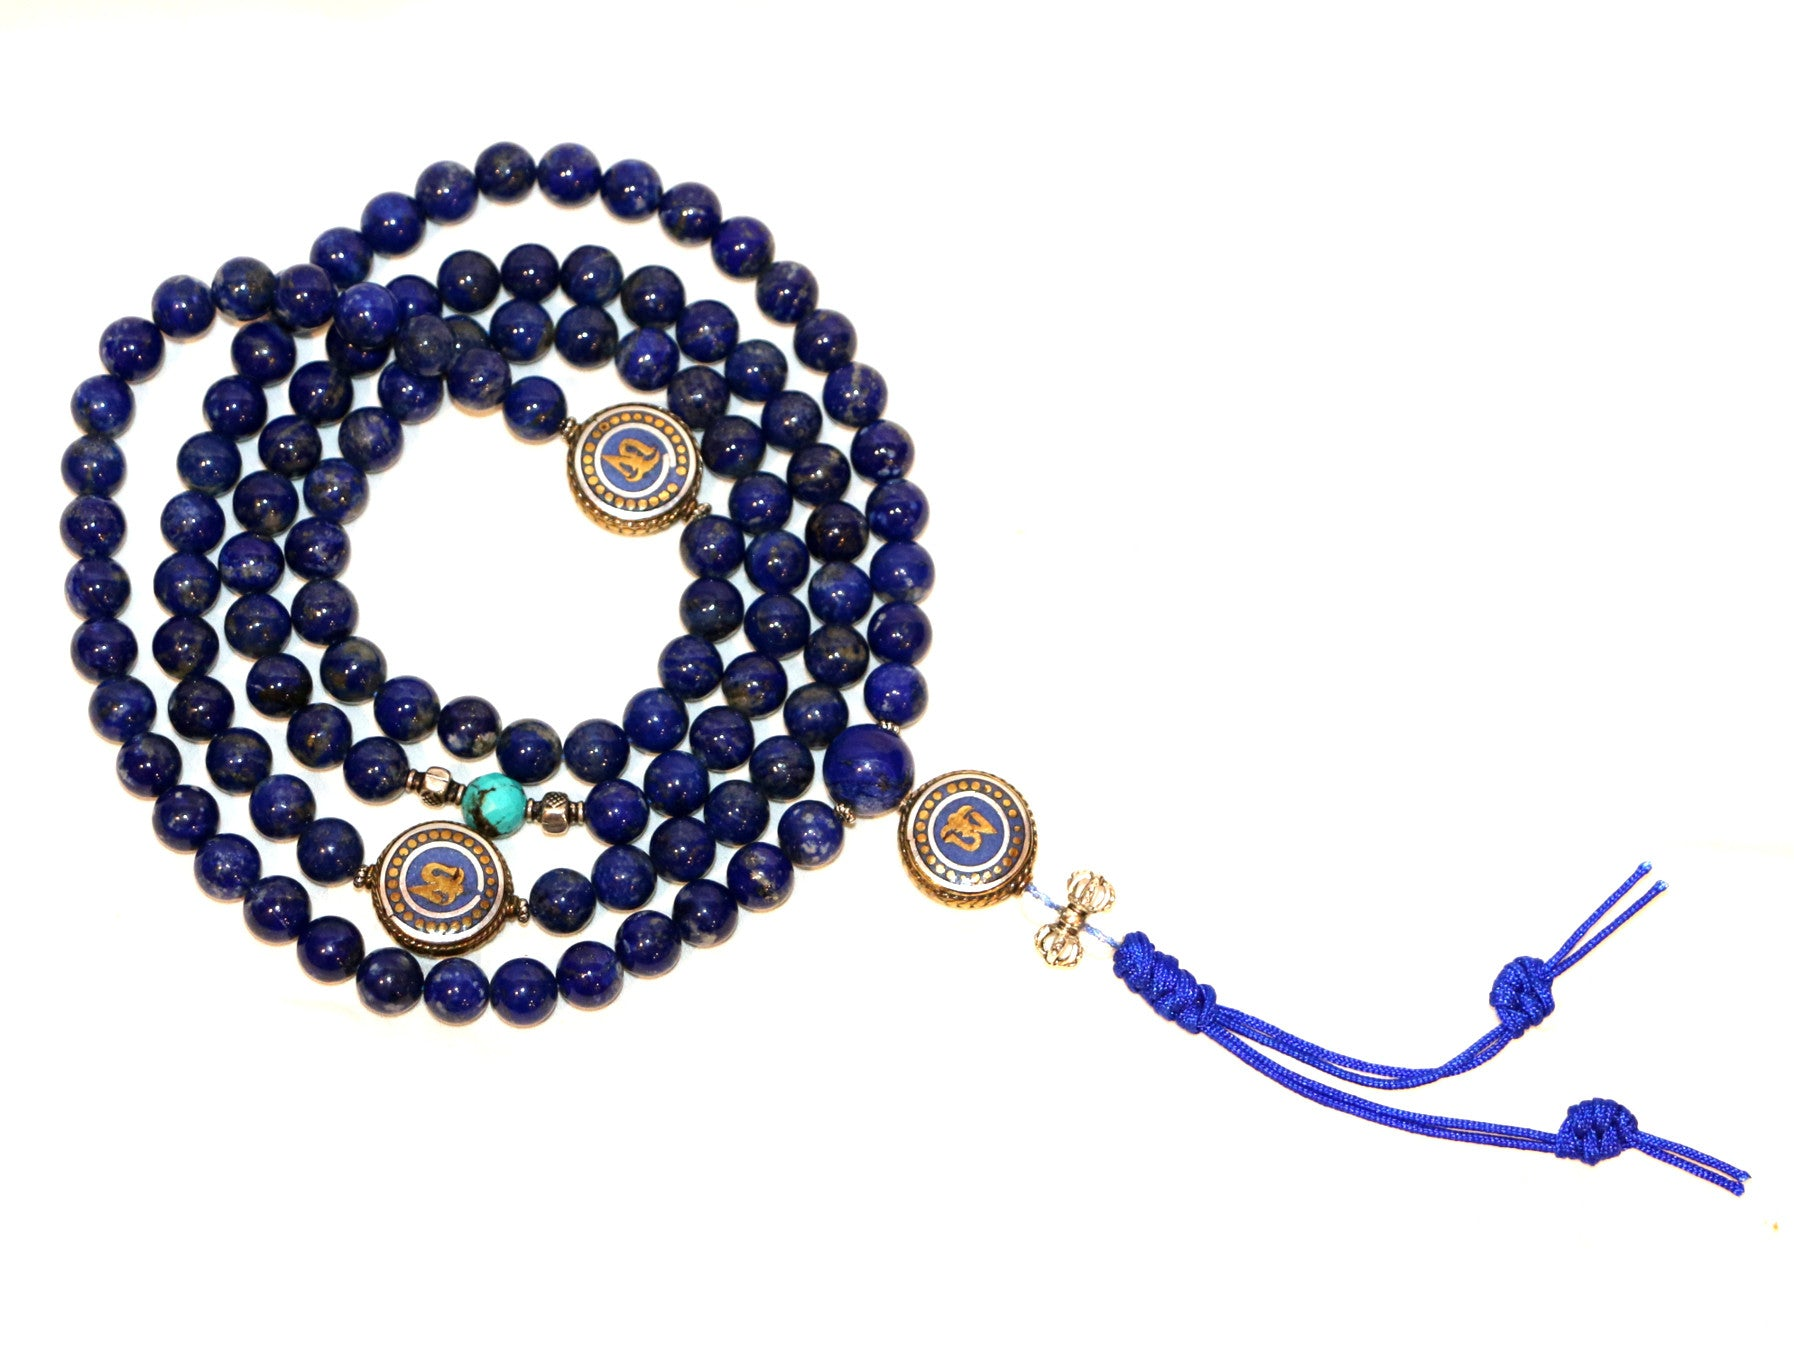 Special Lapis Necklace Mala with OM - Tibet Arts & Healing